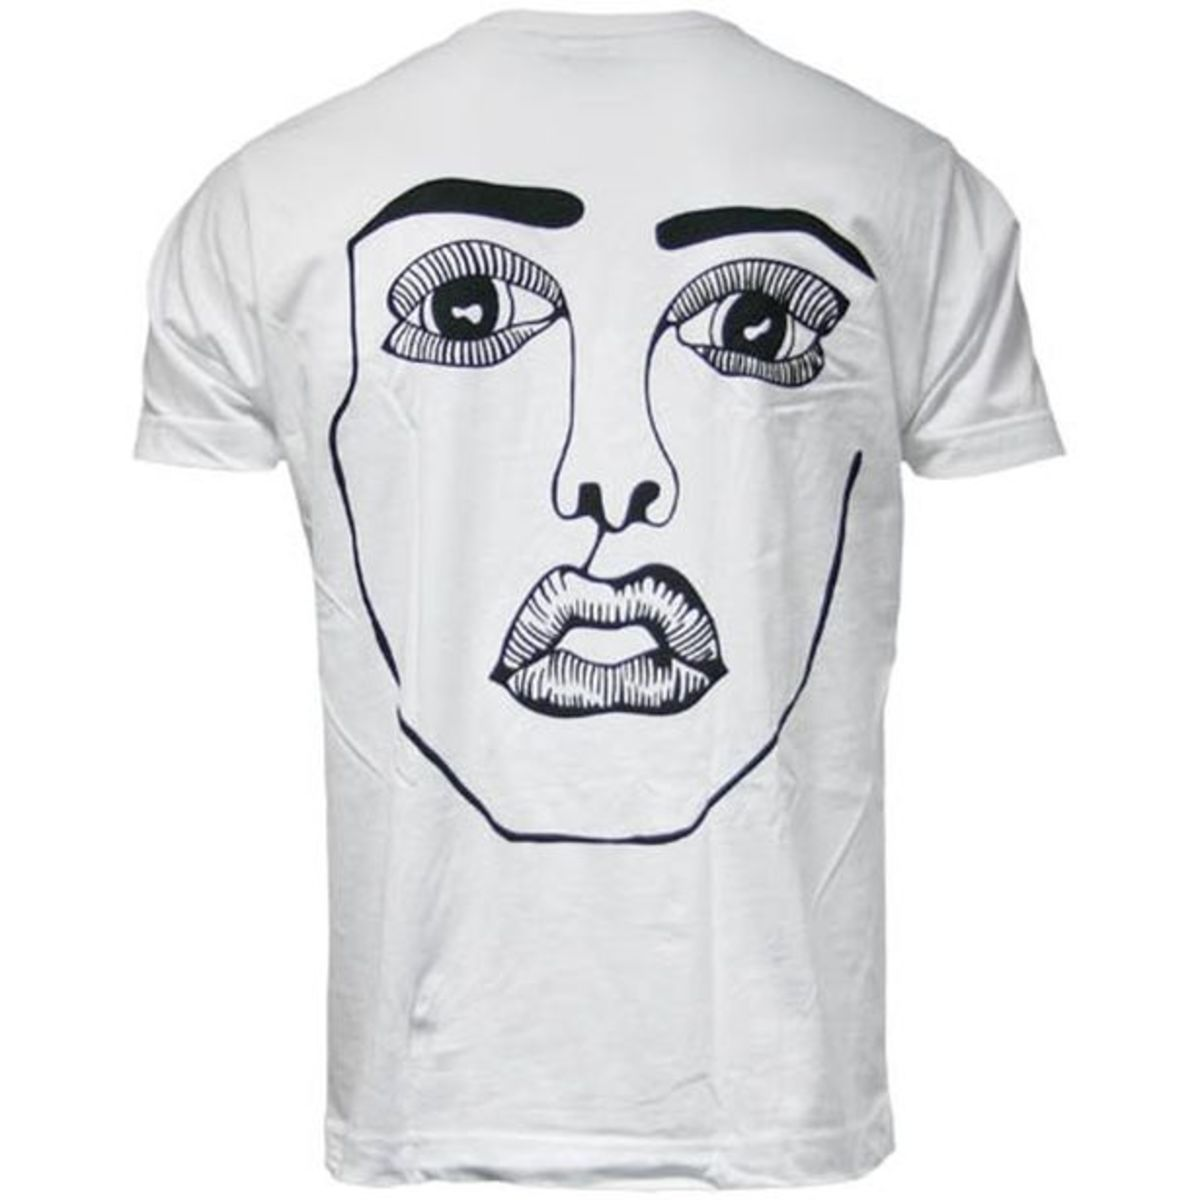 EDM Style: Disclosure Releases Limited Edition T-Shirt Featuring Album Art